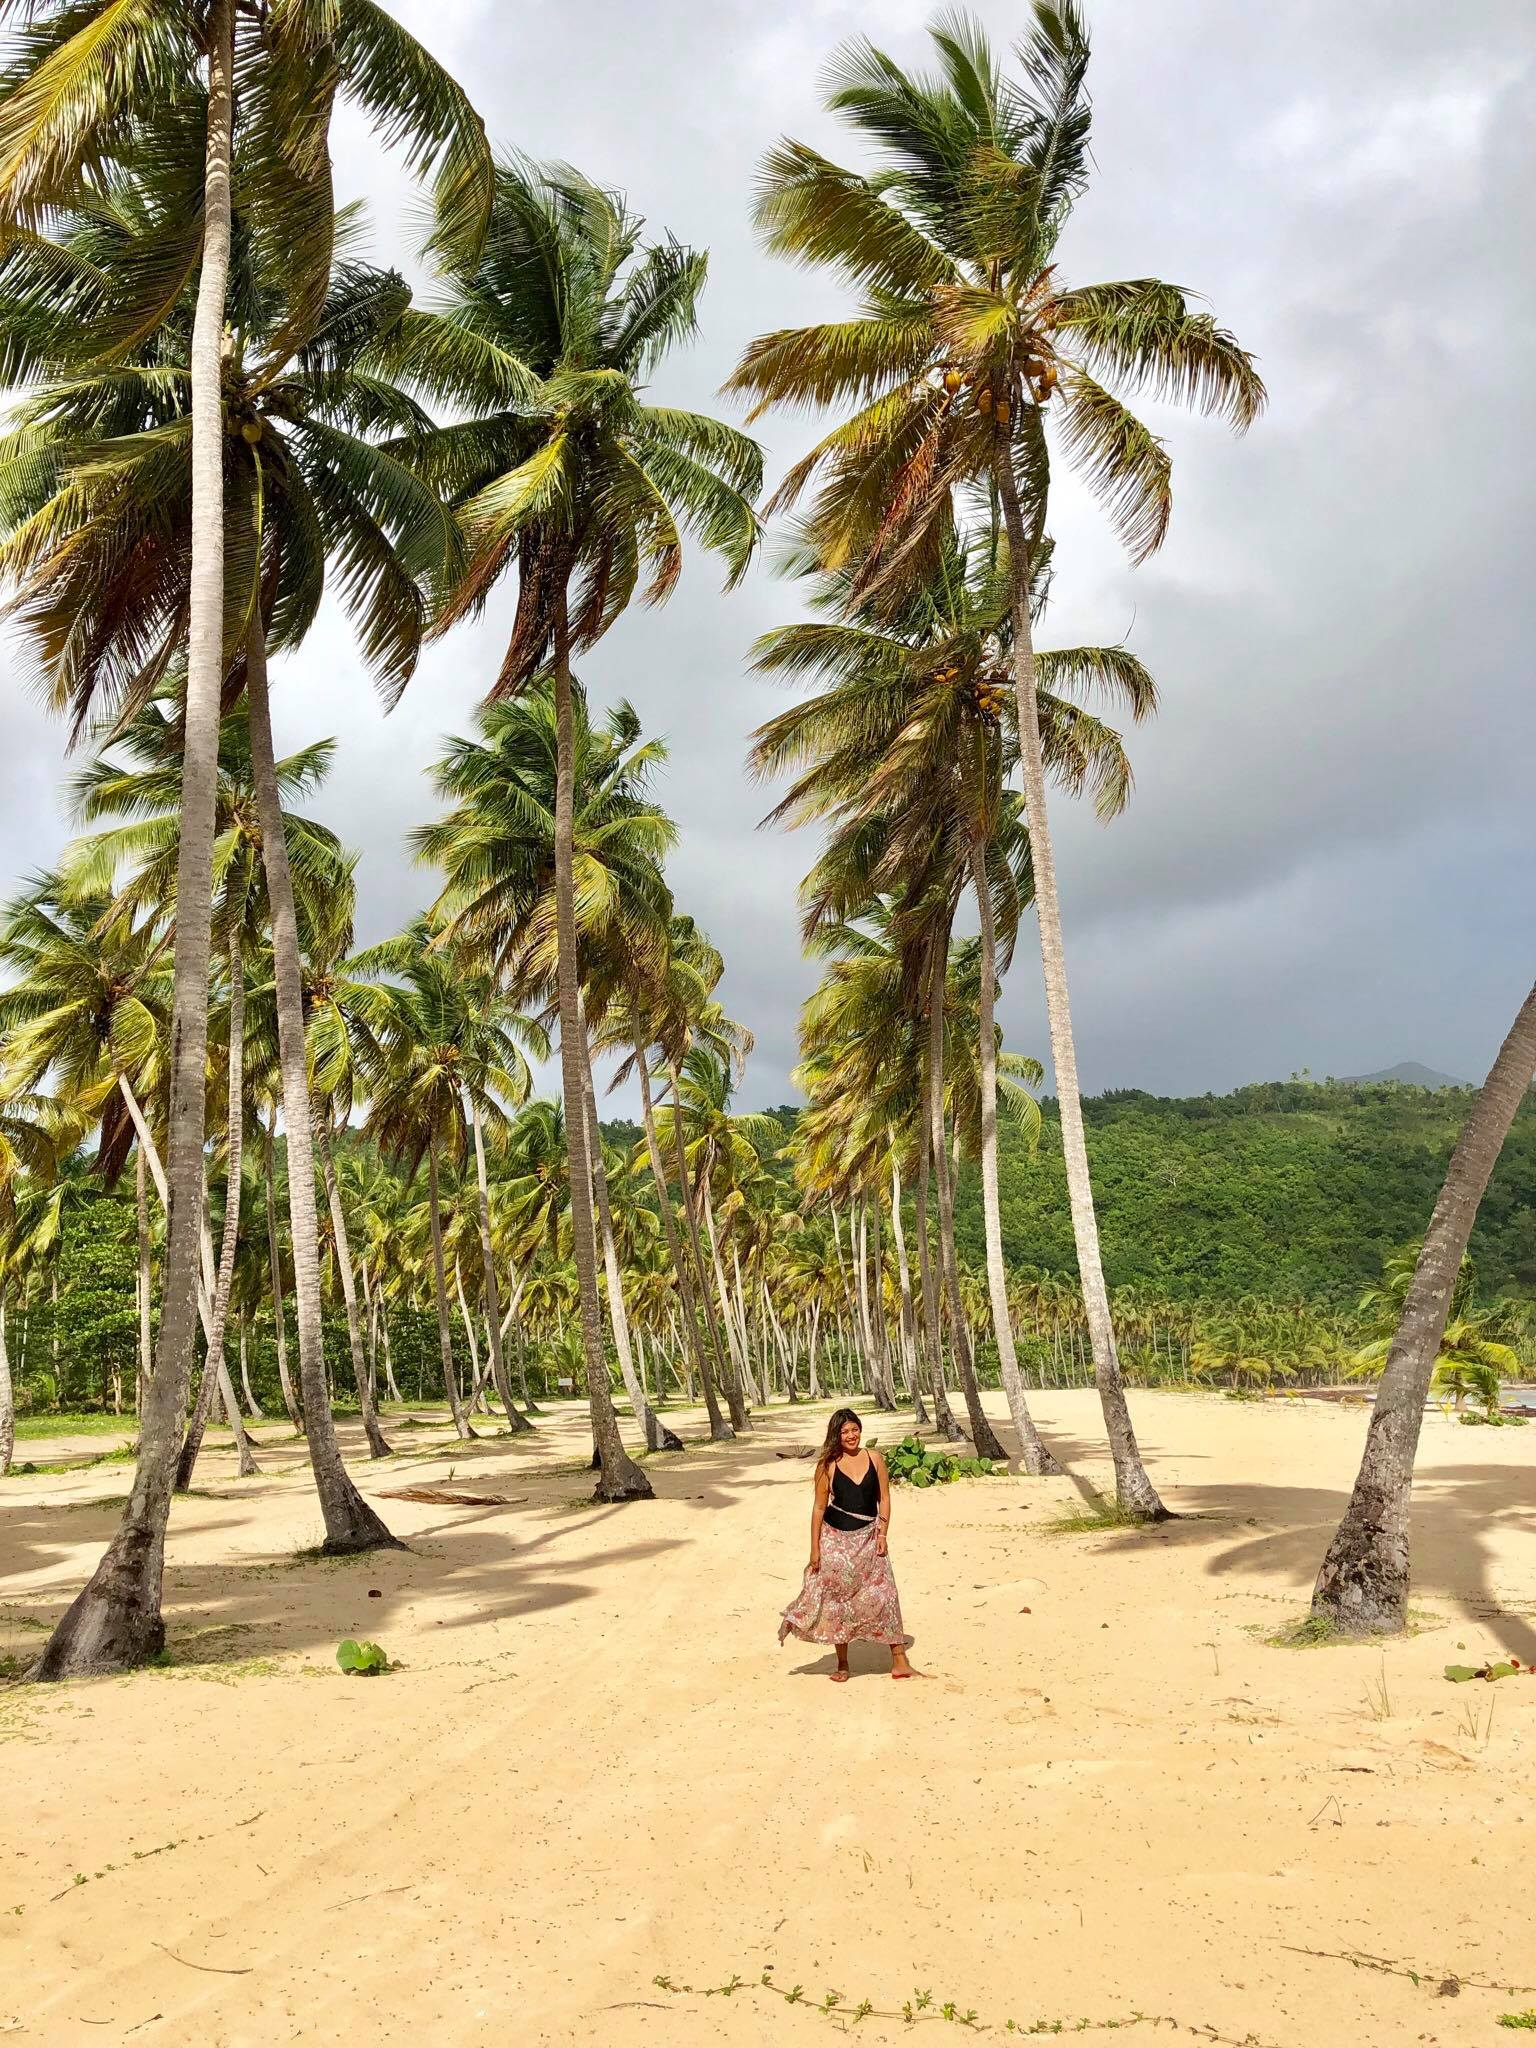 Our 10-Day Roadtrip In The Dominican Republic With The Dominican Expert.jpg